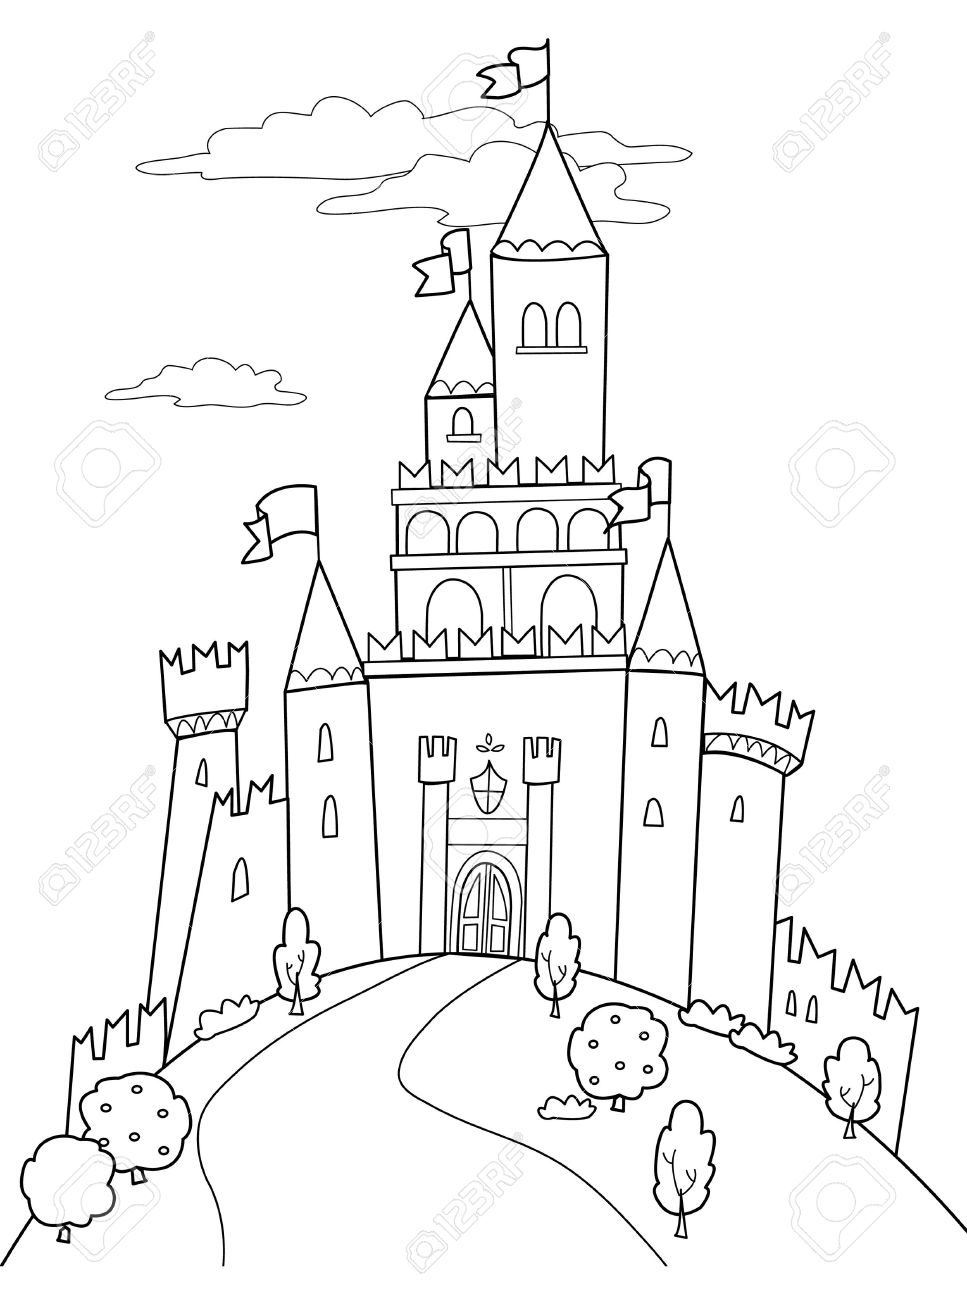 Black and white castle clipart vector download Fairytale Castle Png Black And White & Free Fairytale Castle Black ... vector download